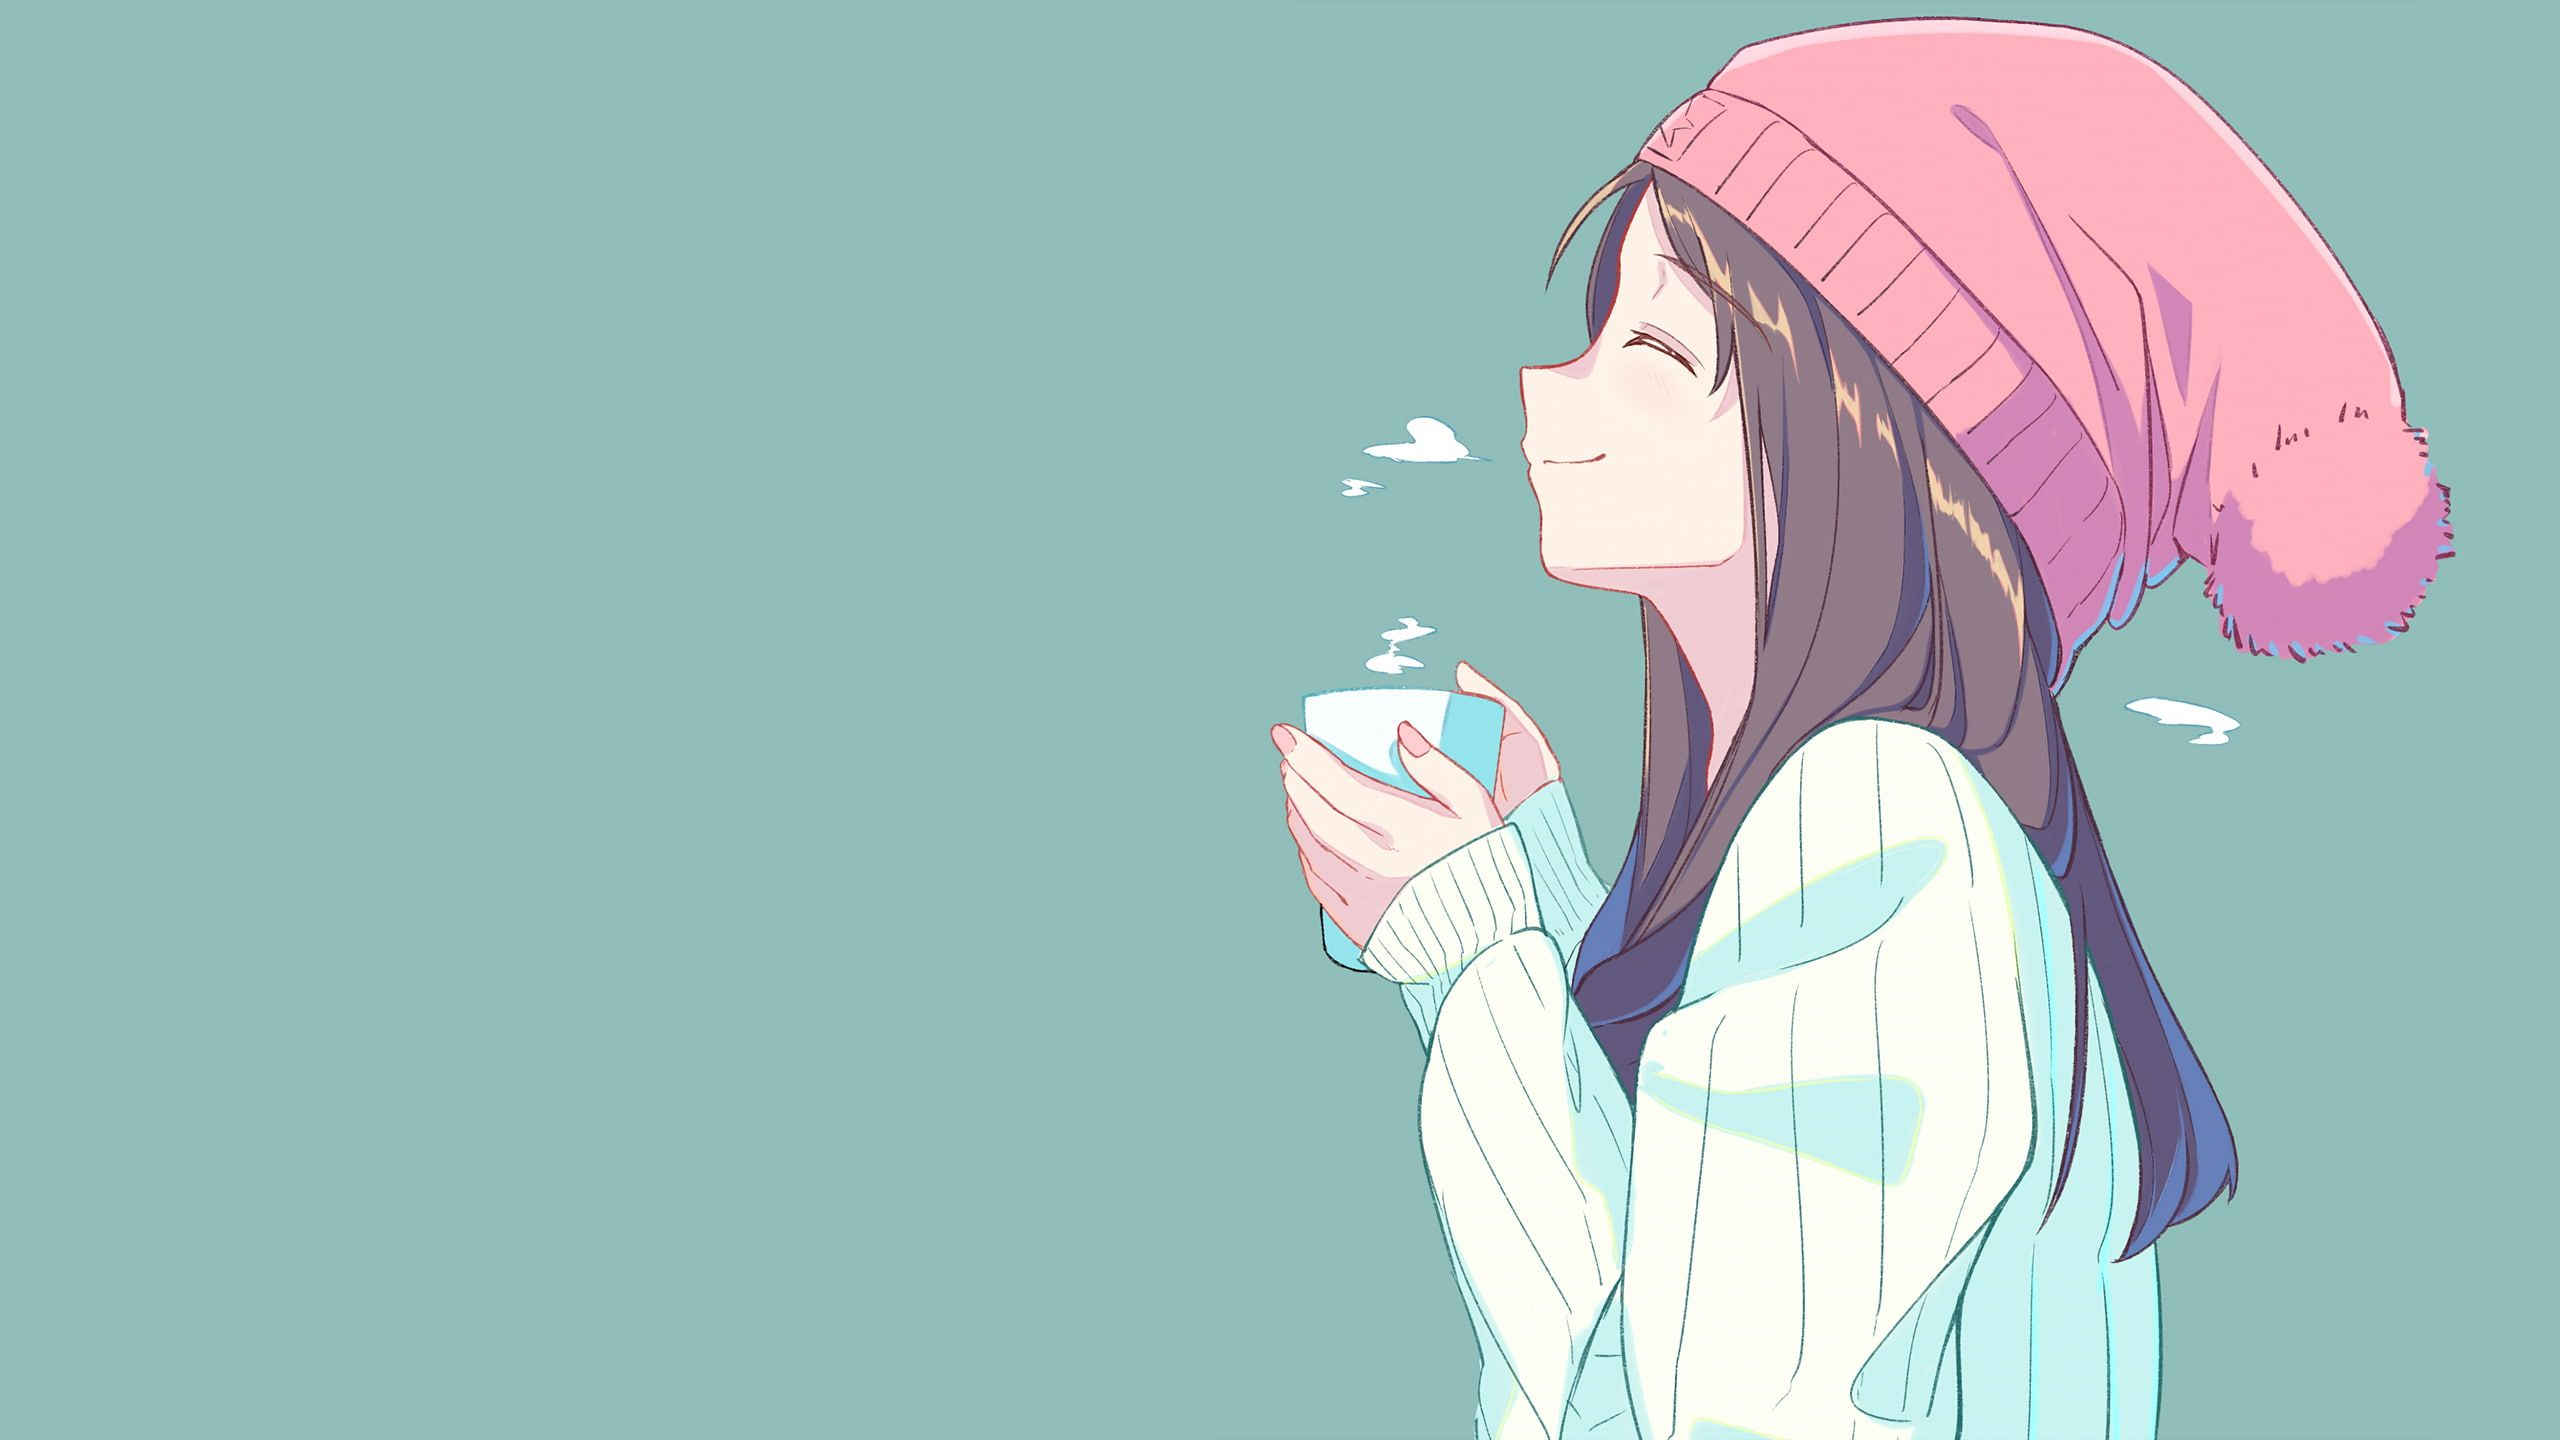 Anime Hat Anime Girls Tea Closed Eyes Simple Background Cup Brunette Face Profile 2k Wa Anime Computer Wallpaper Aesthetic Anime Cute Laptop Wallpaper